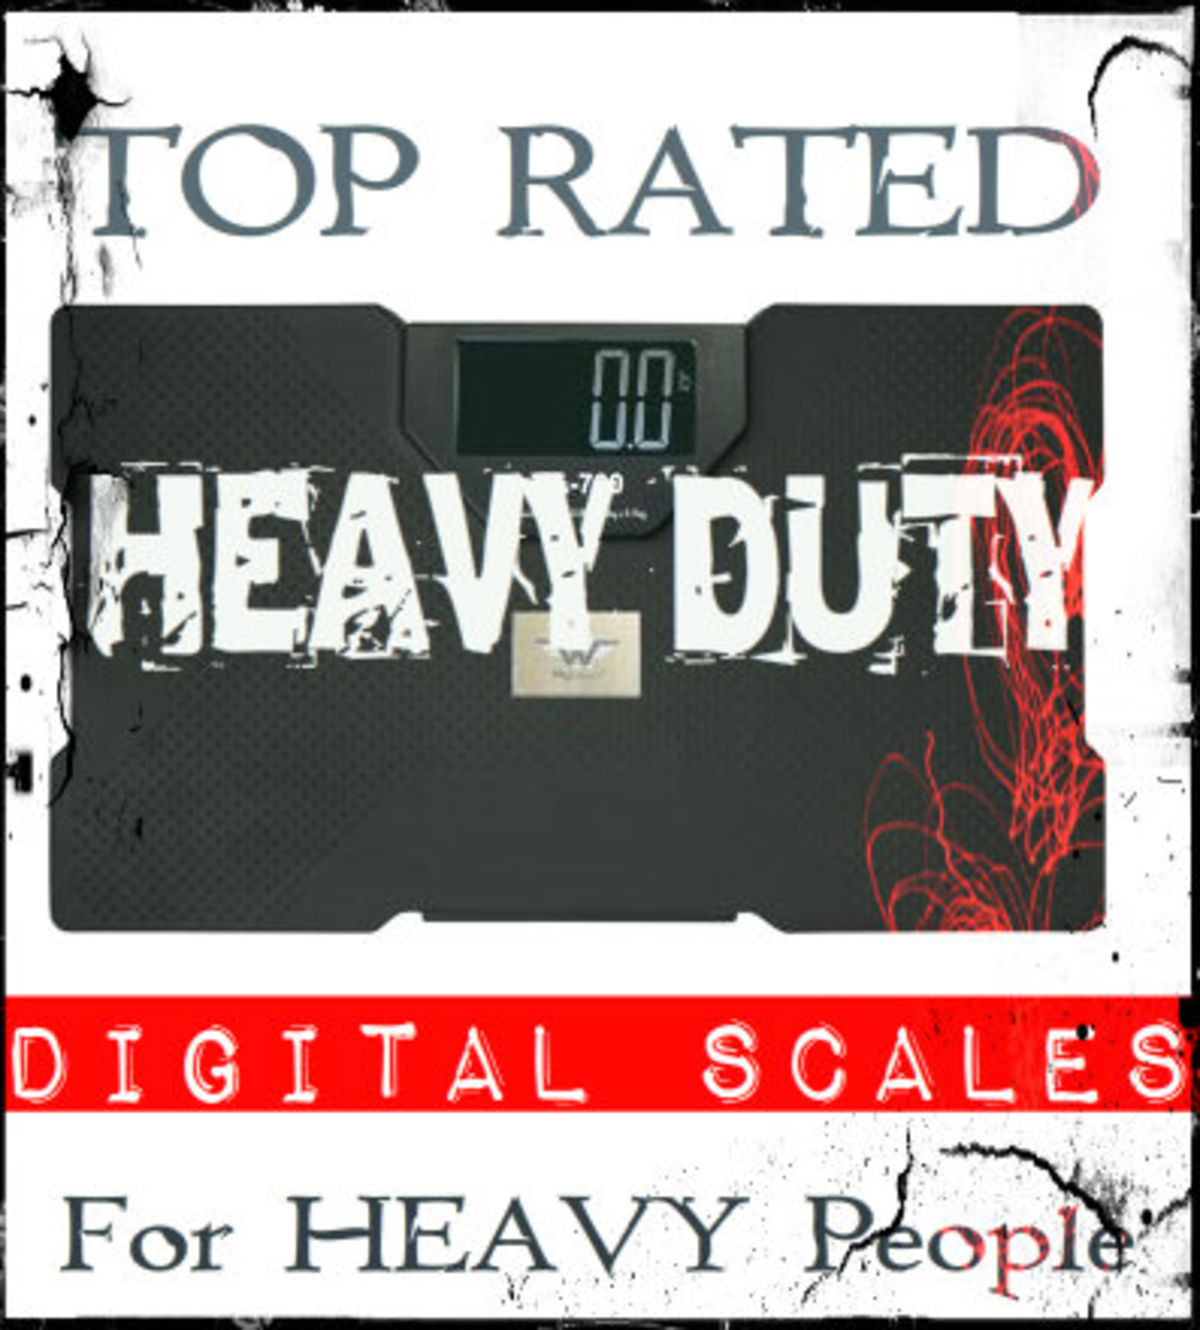 Heavy Duty Weight Scales For Obese People A Listly List